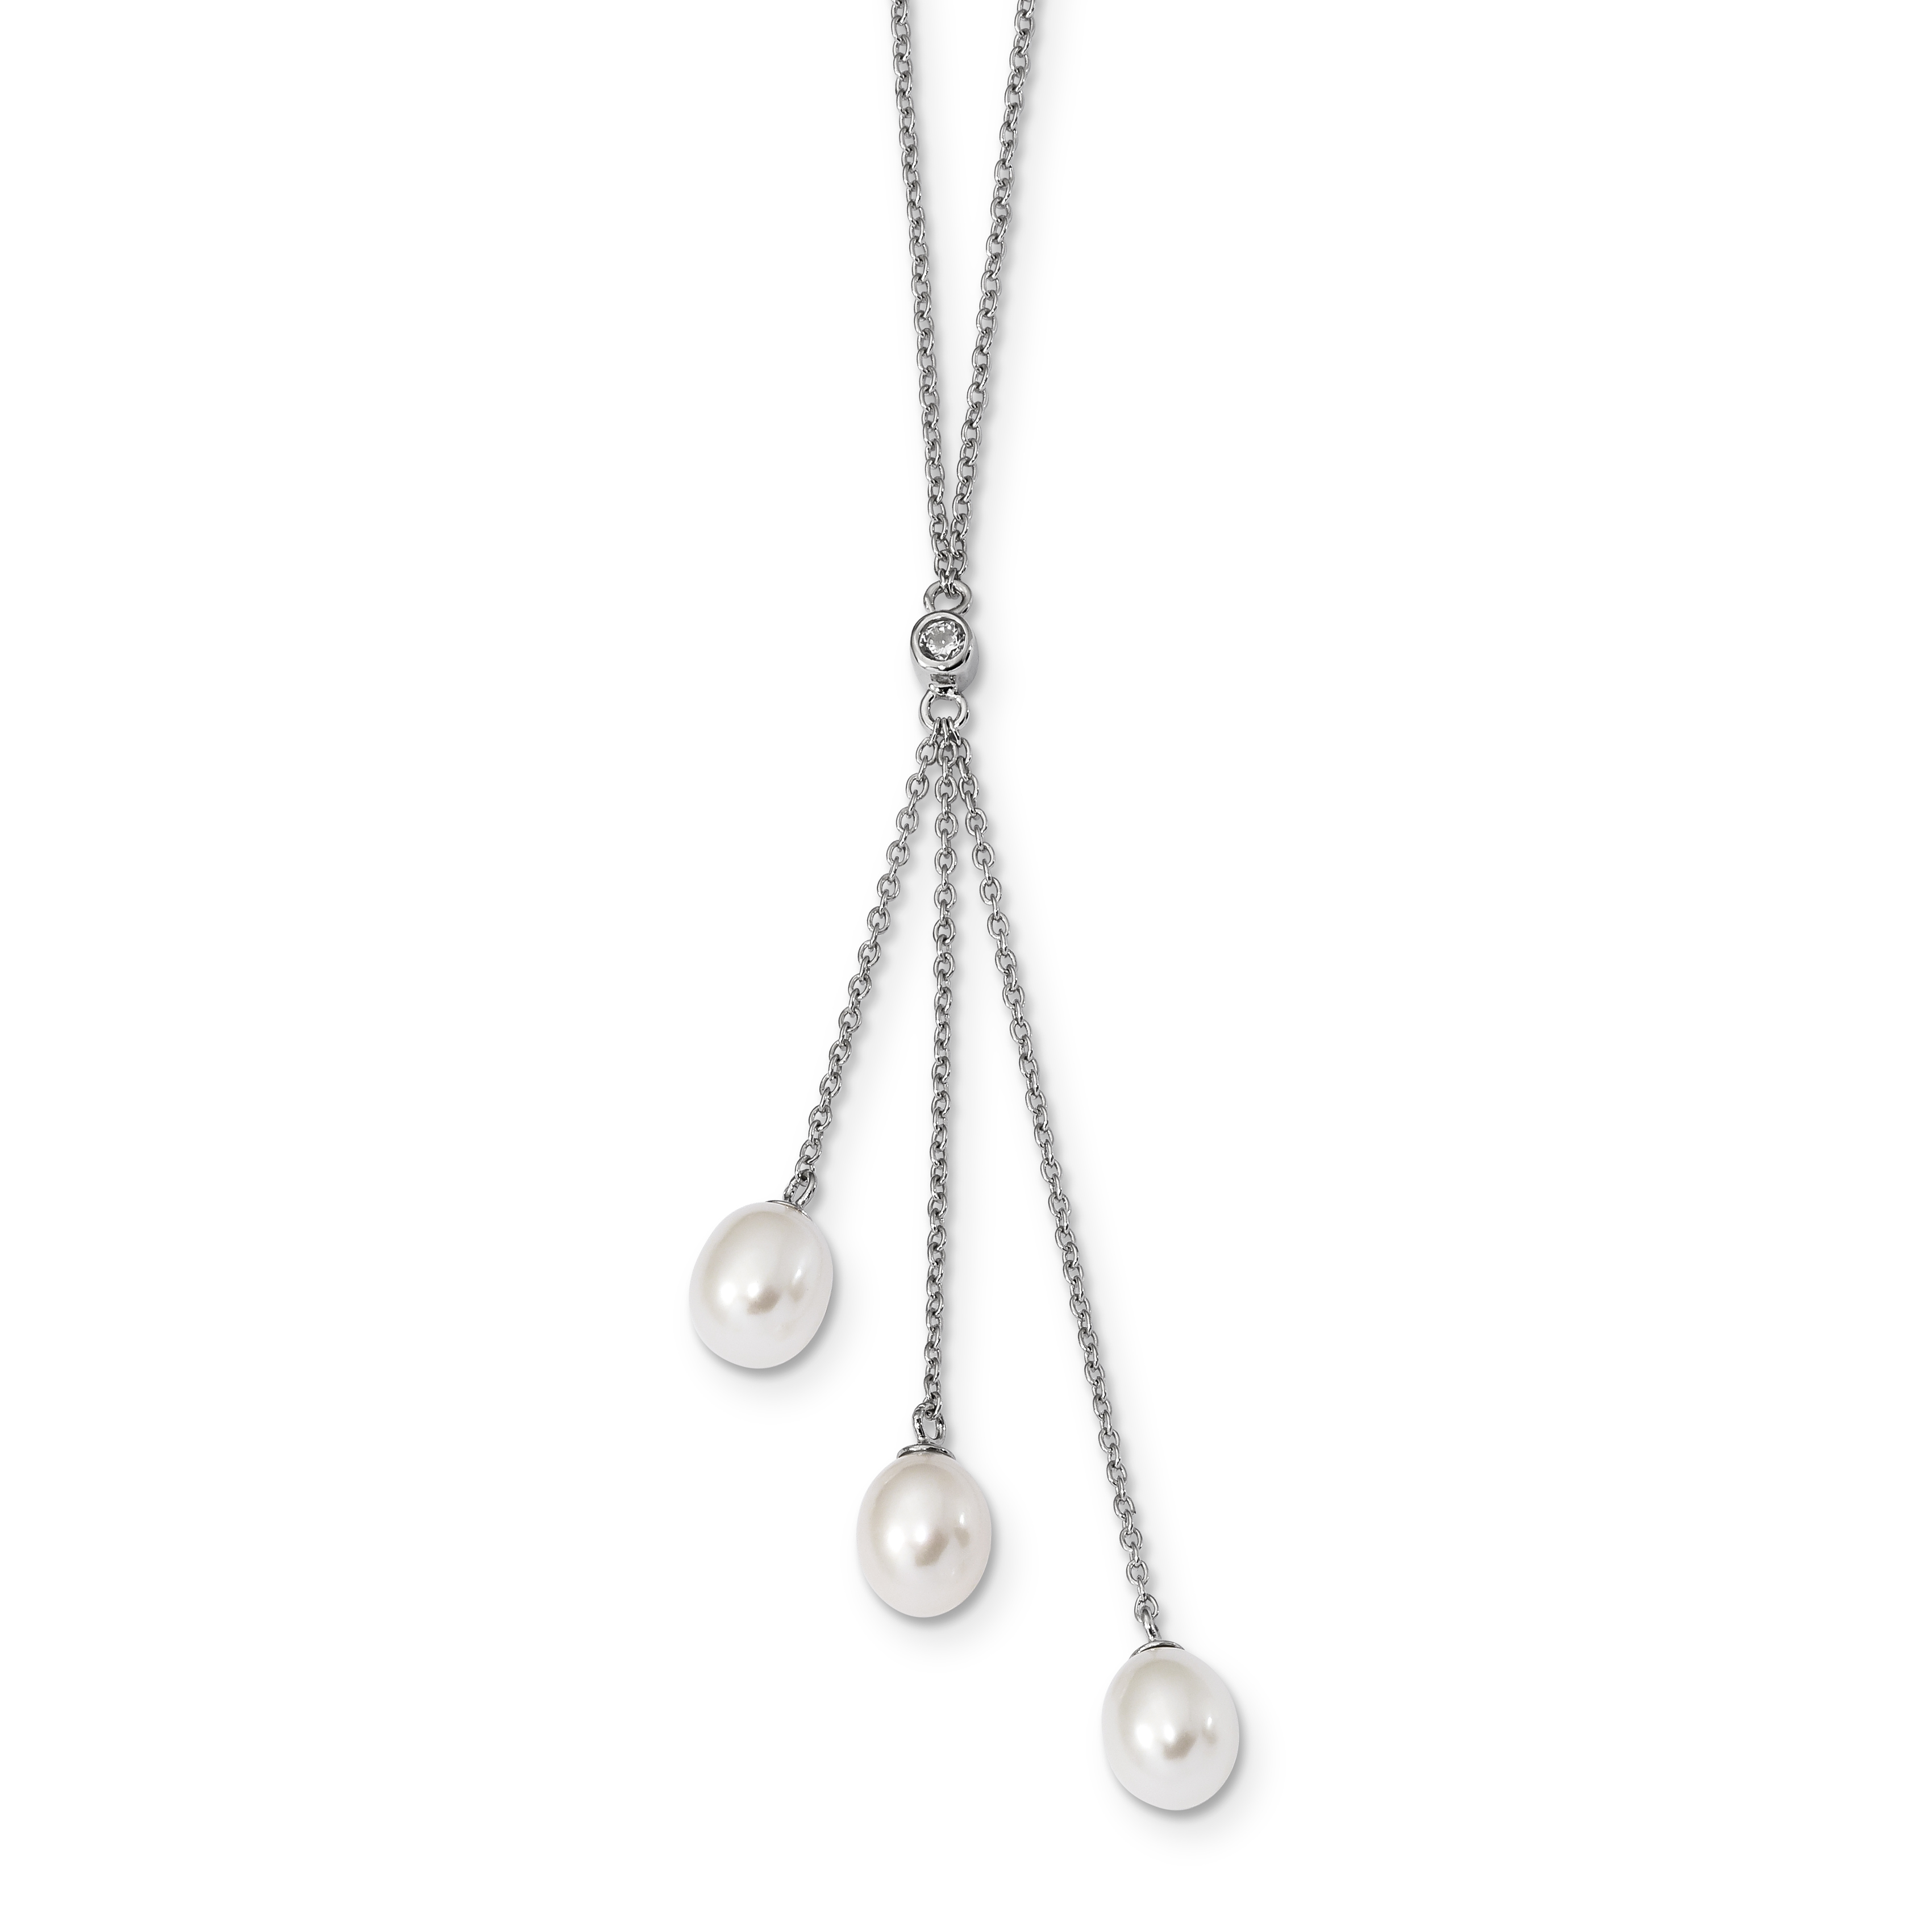 Sterling Silver RH 7-8mm White Rice FWC Pearl CZ Necklace 18 Inch - image 2 de 2